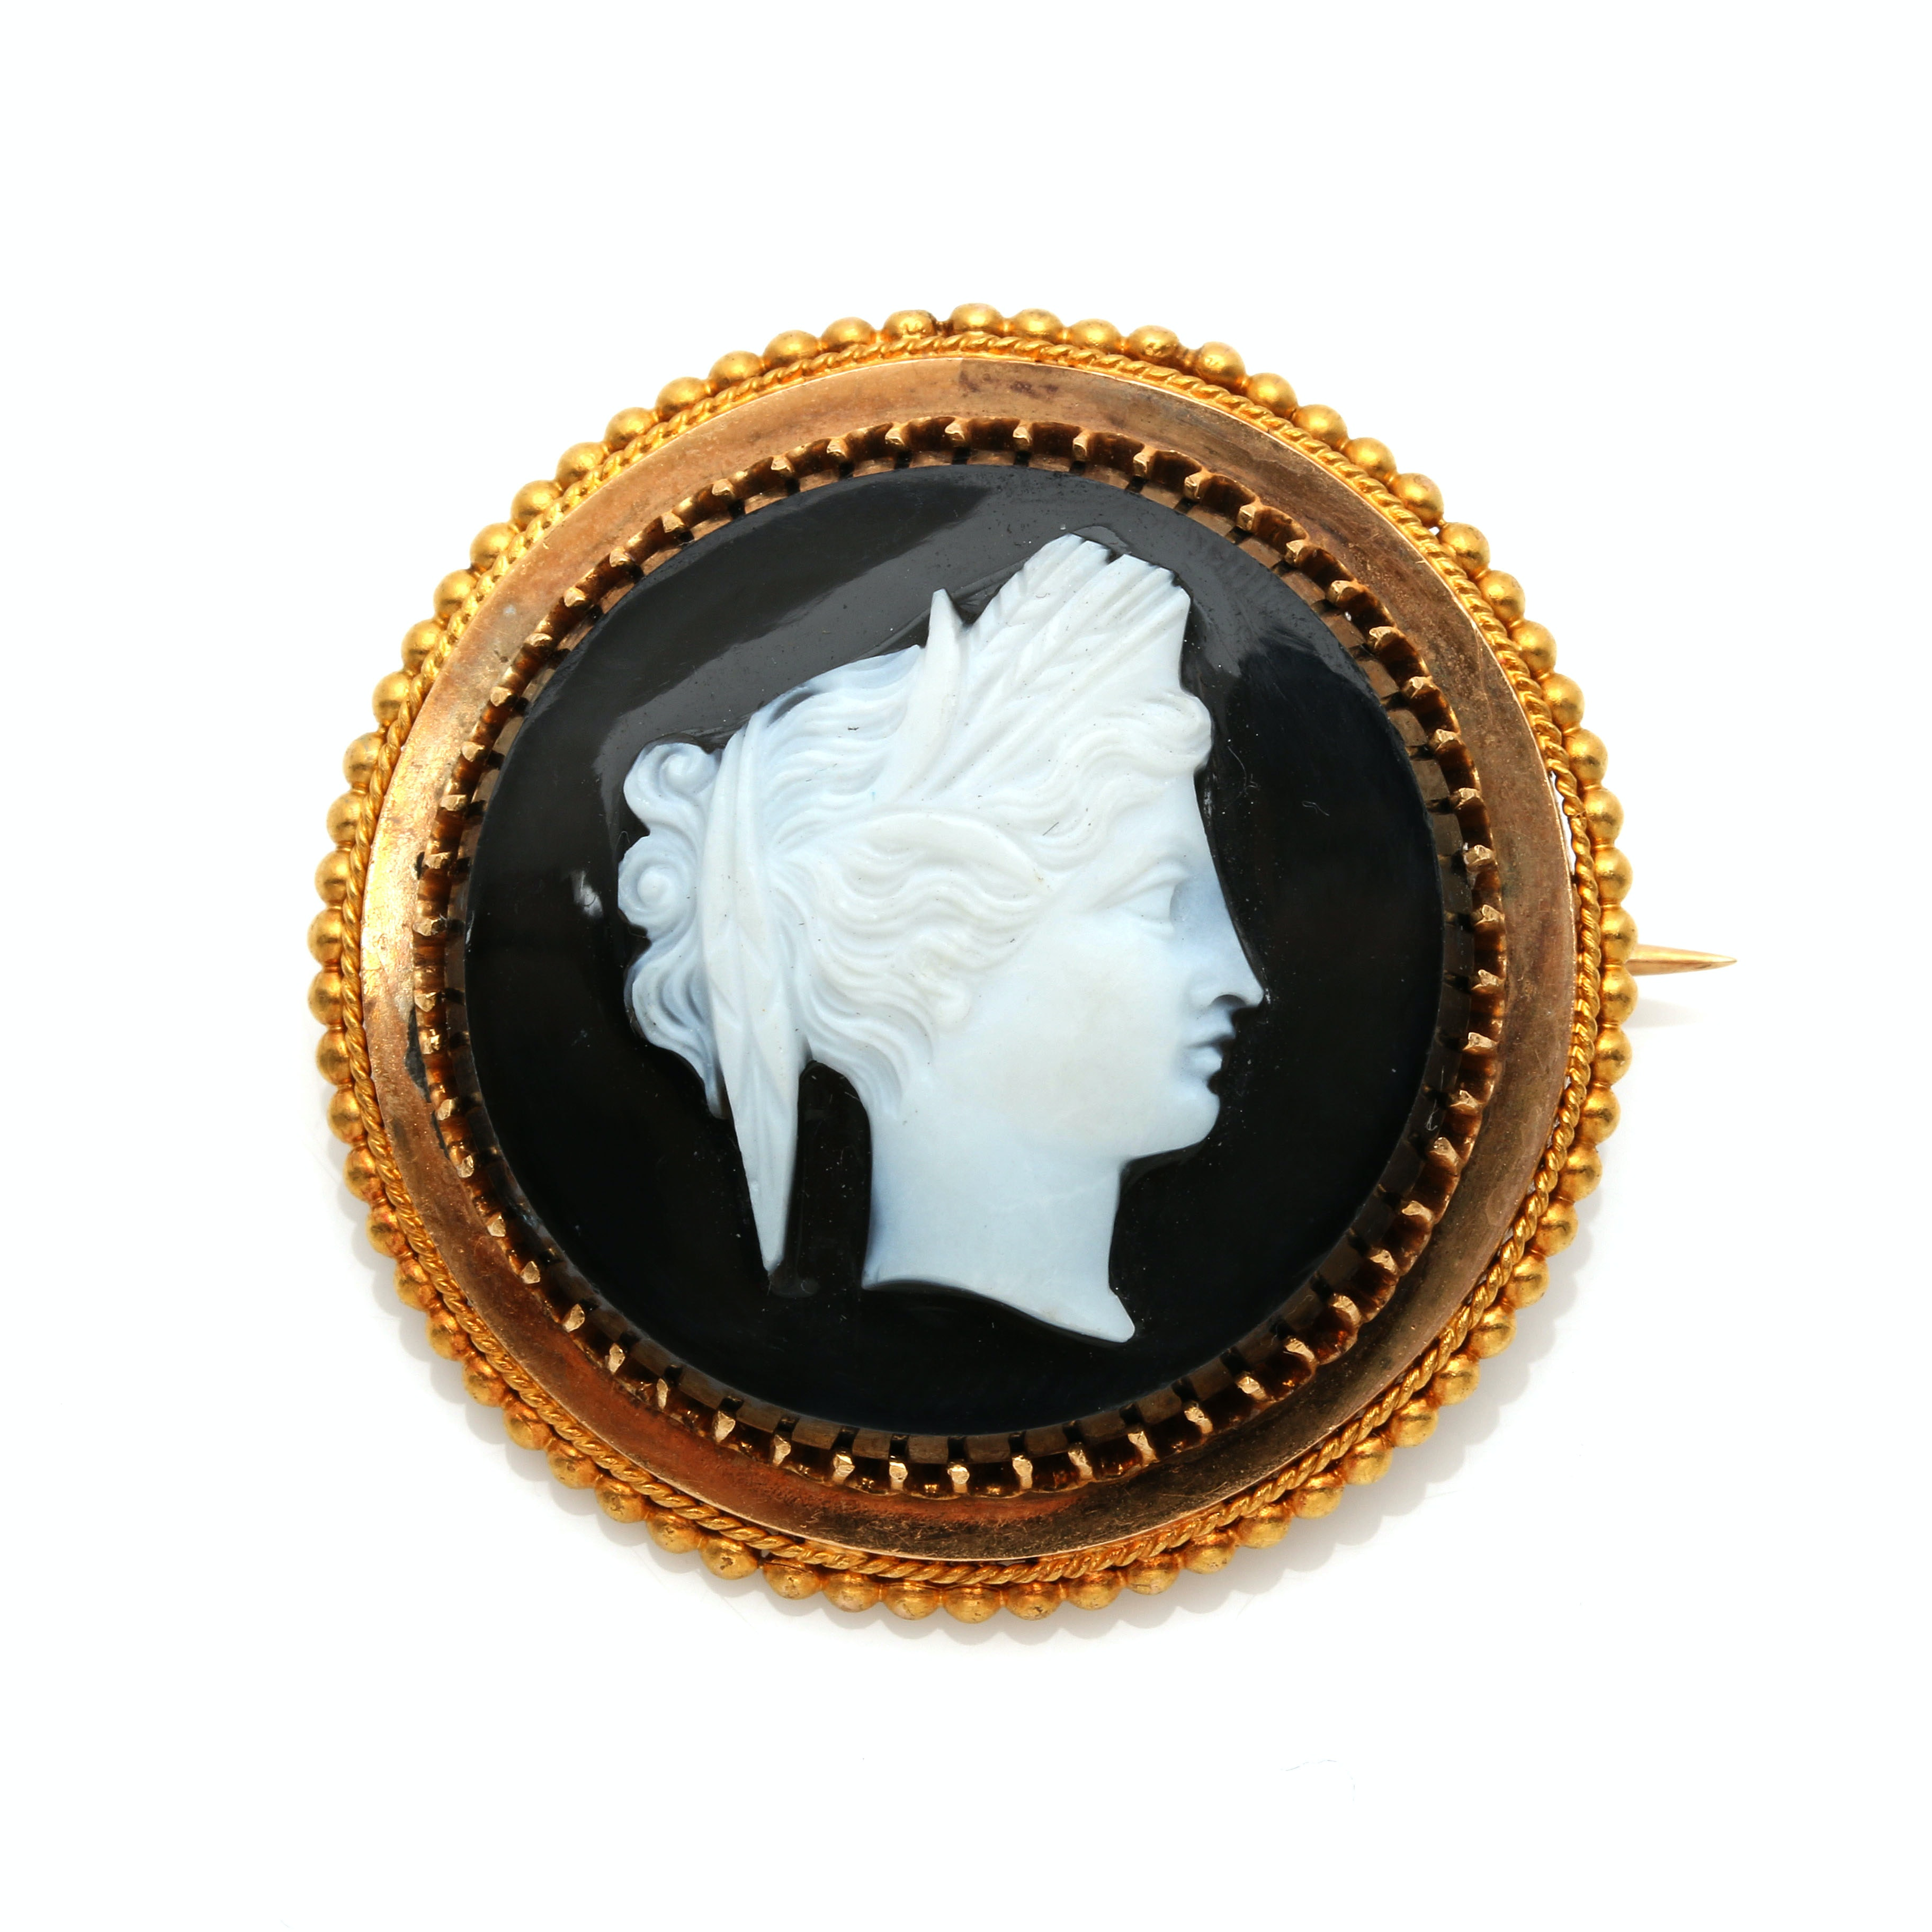 18K and 14K Yellow Gold Onyx Cameo Brooch